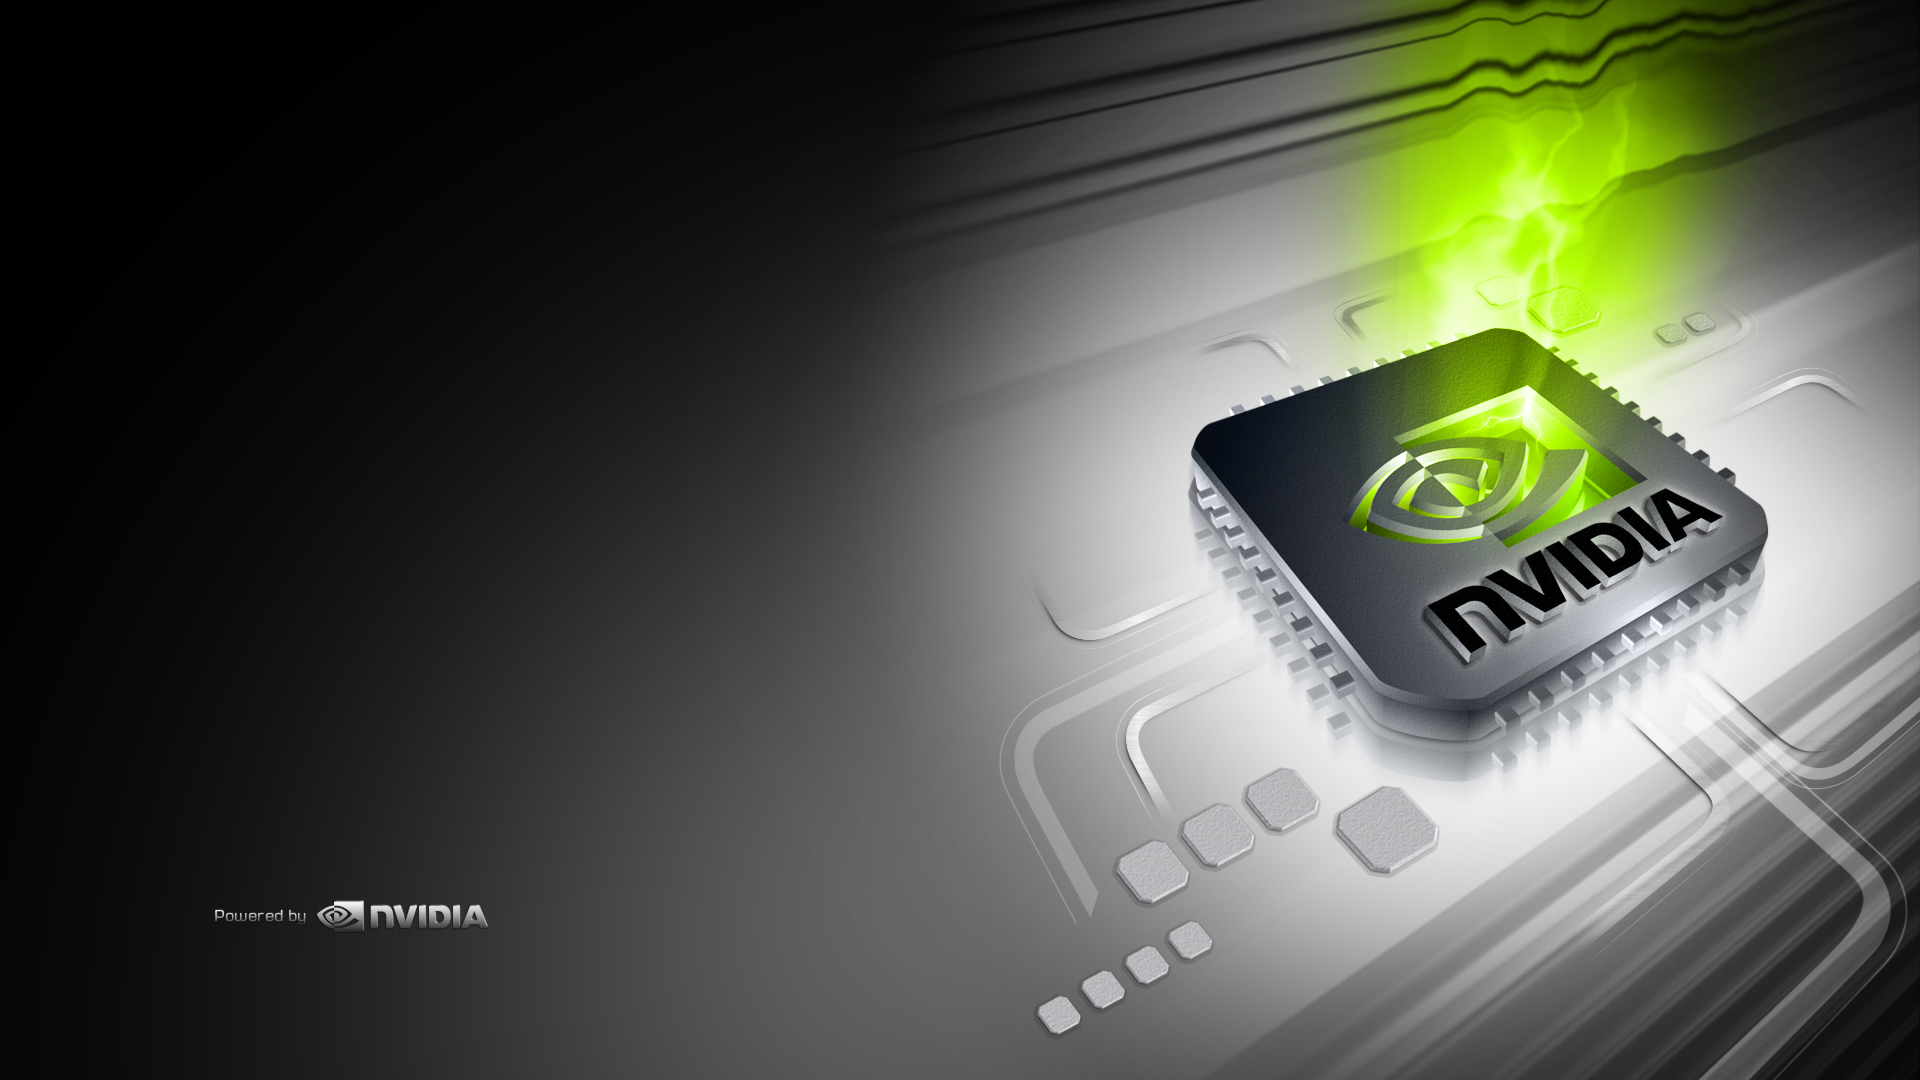 Free Desktop Nvidia Wallpapers